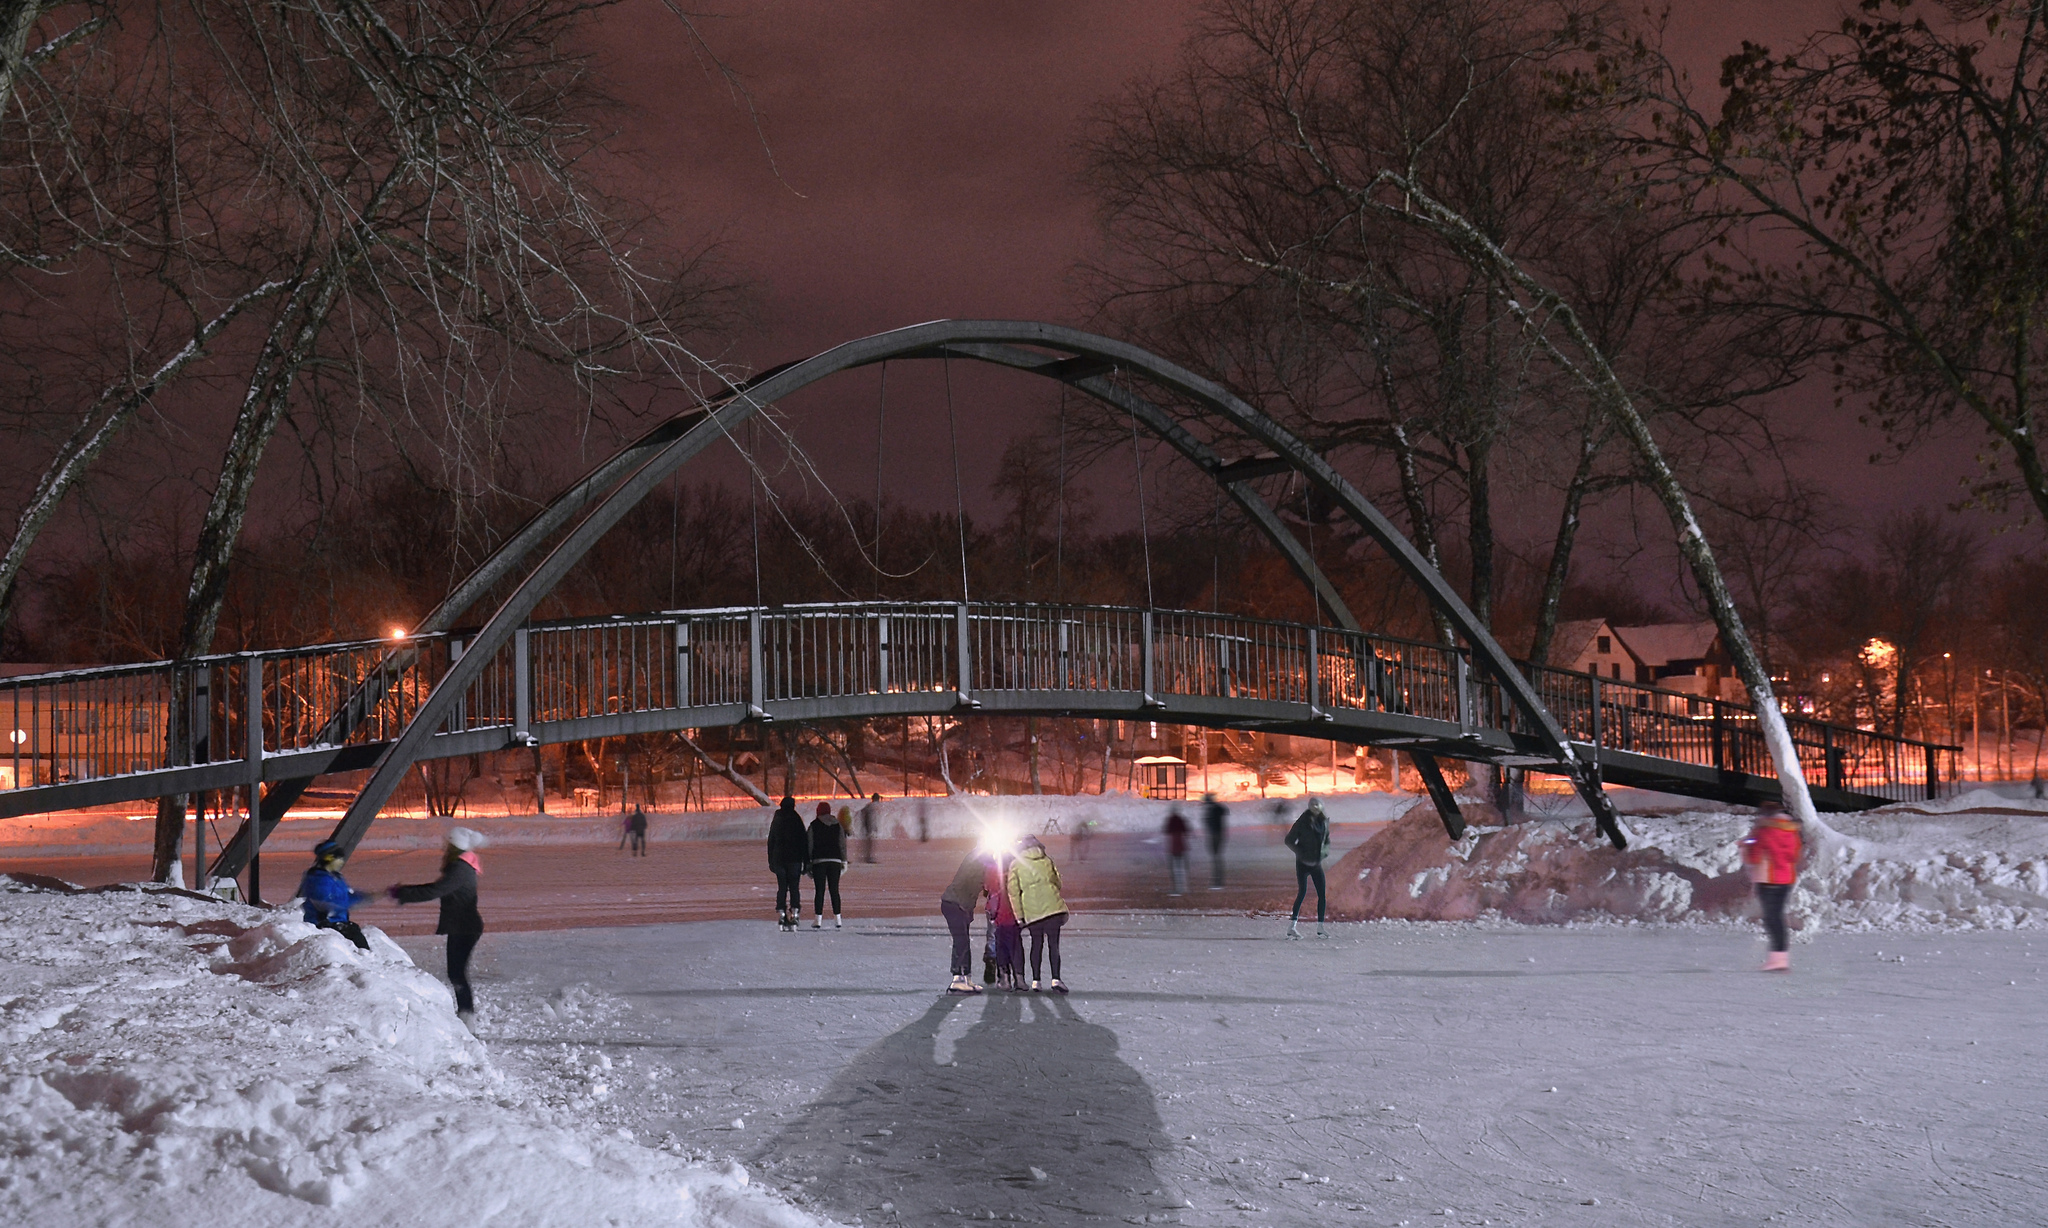 Tenney Park in Madison is an Amazing Natural Ice Rink in Wisconsin and Youll Want To Visit